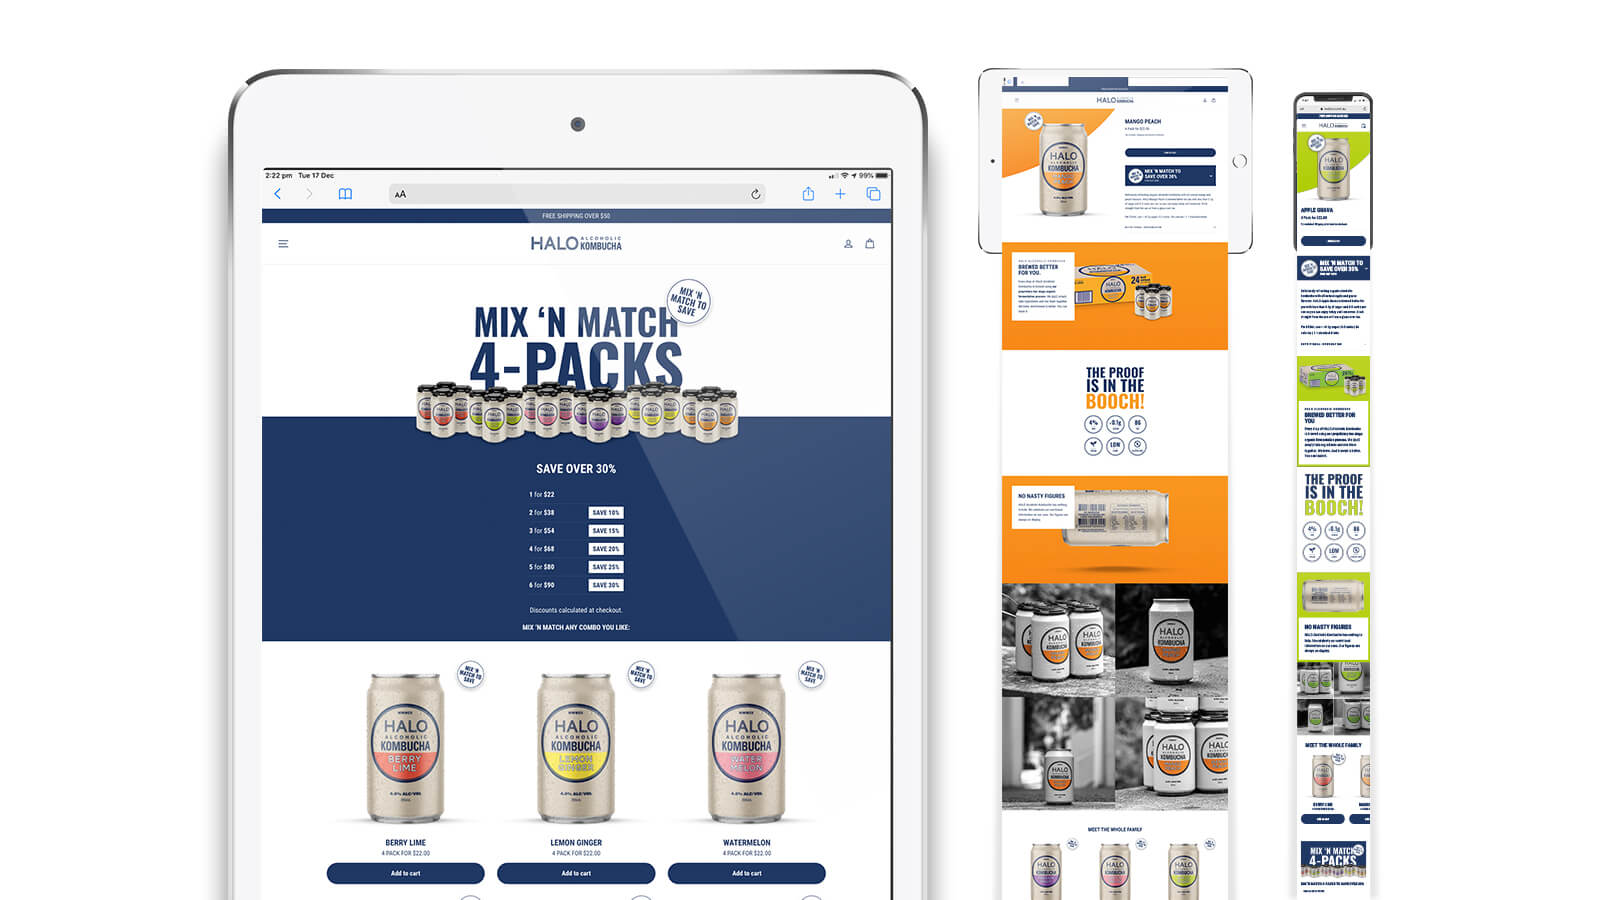 Halo Alcoholic Kombucha | Product detail page on tablet and mobile  | Devotion